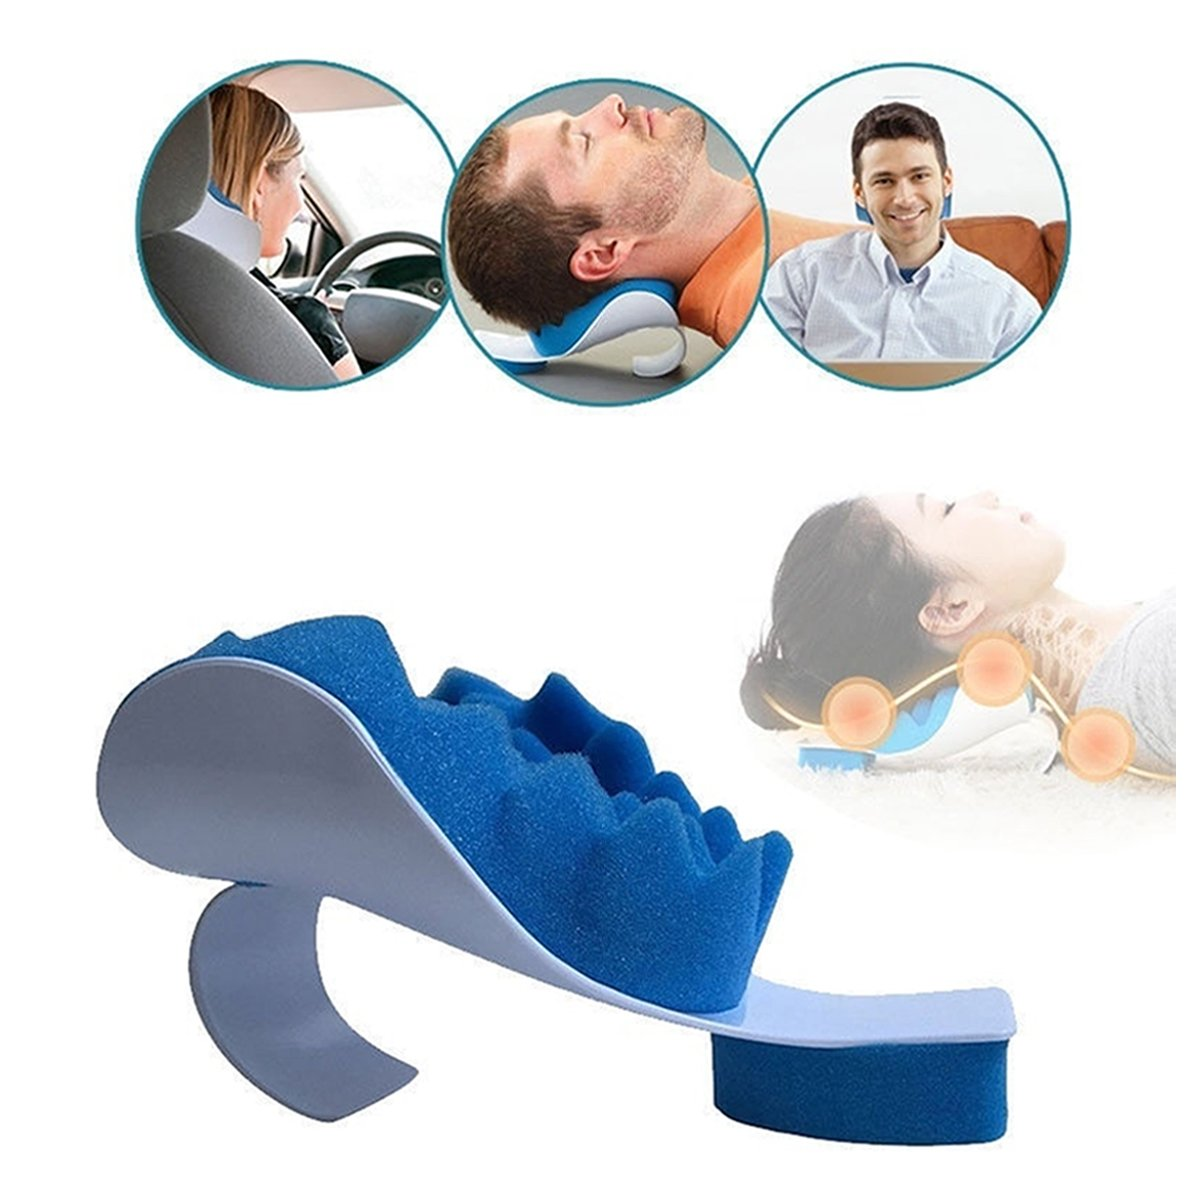 Inflatable Neck Pillow for Travel with Plastic & Sponge Filling